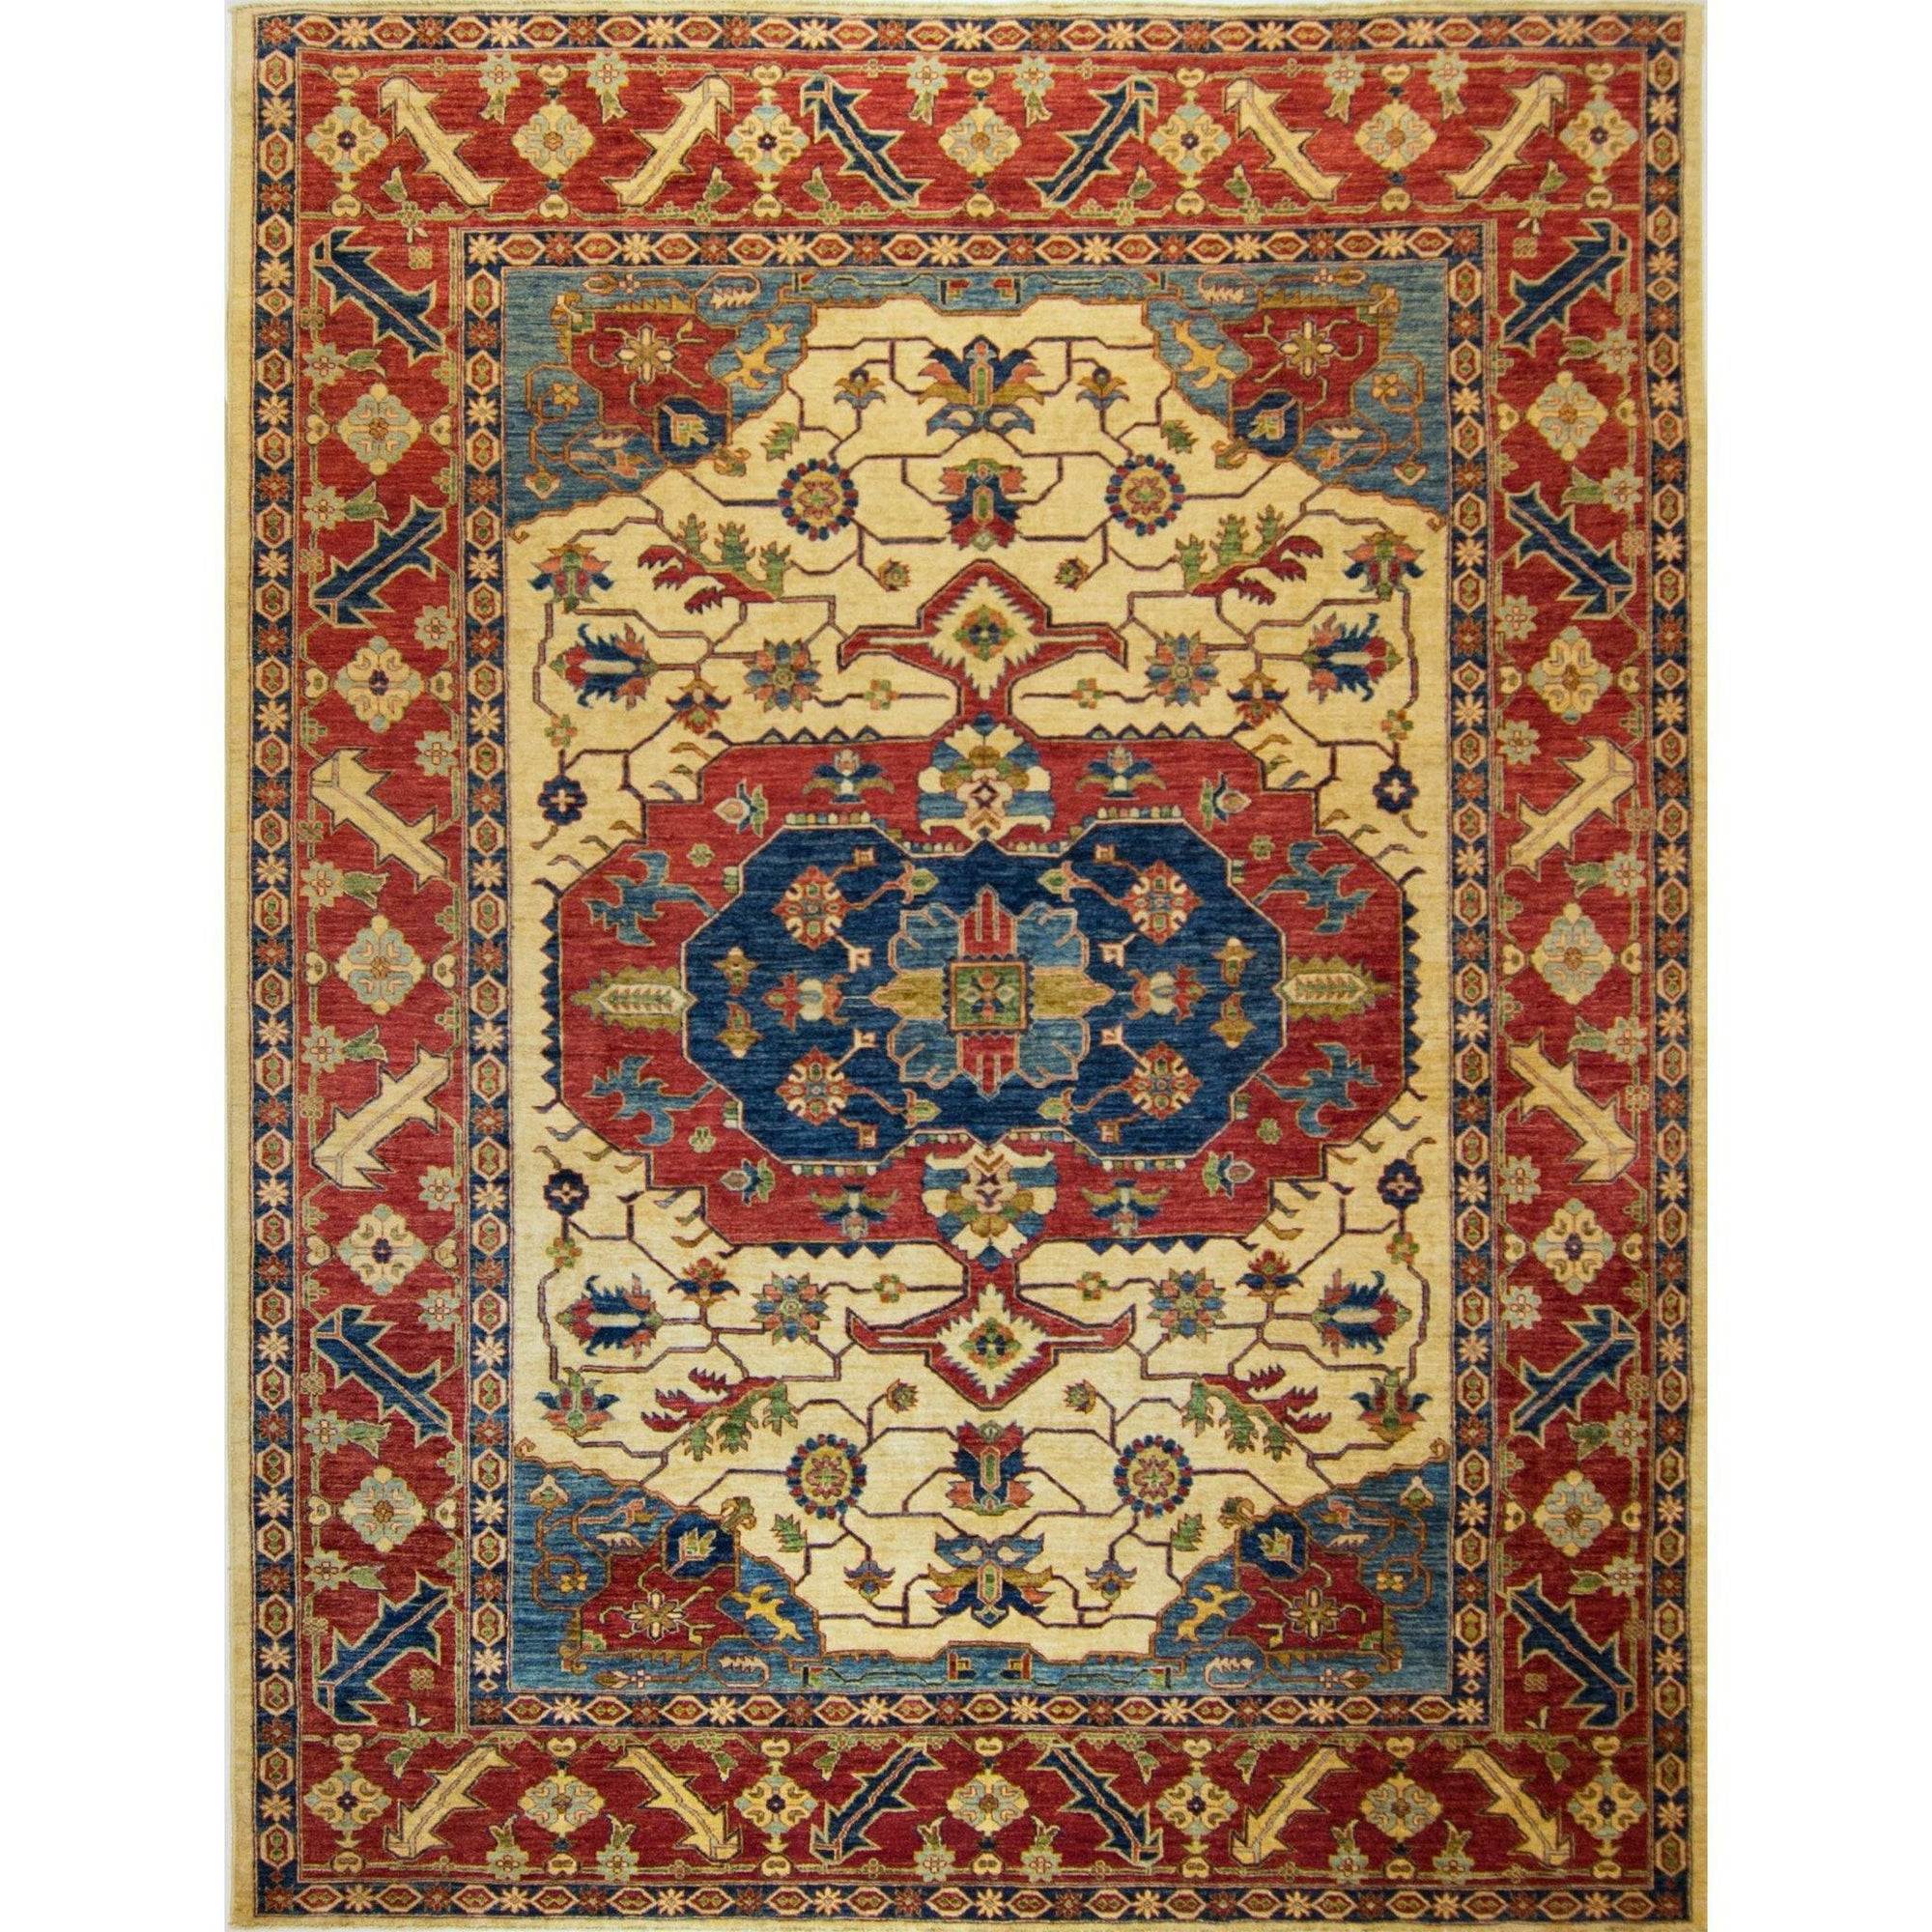 Fine Hand-knotted Wool Heriz 270cm x 335cm Persian-Rug | House-of-Haghi | NewMarket | Auckland | NZ | Handmade Persian Rugs | Hand Knotted Persian Rugs